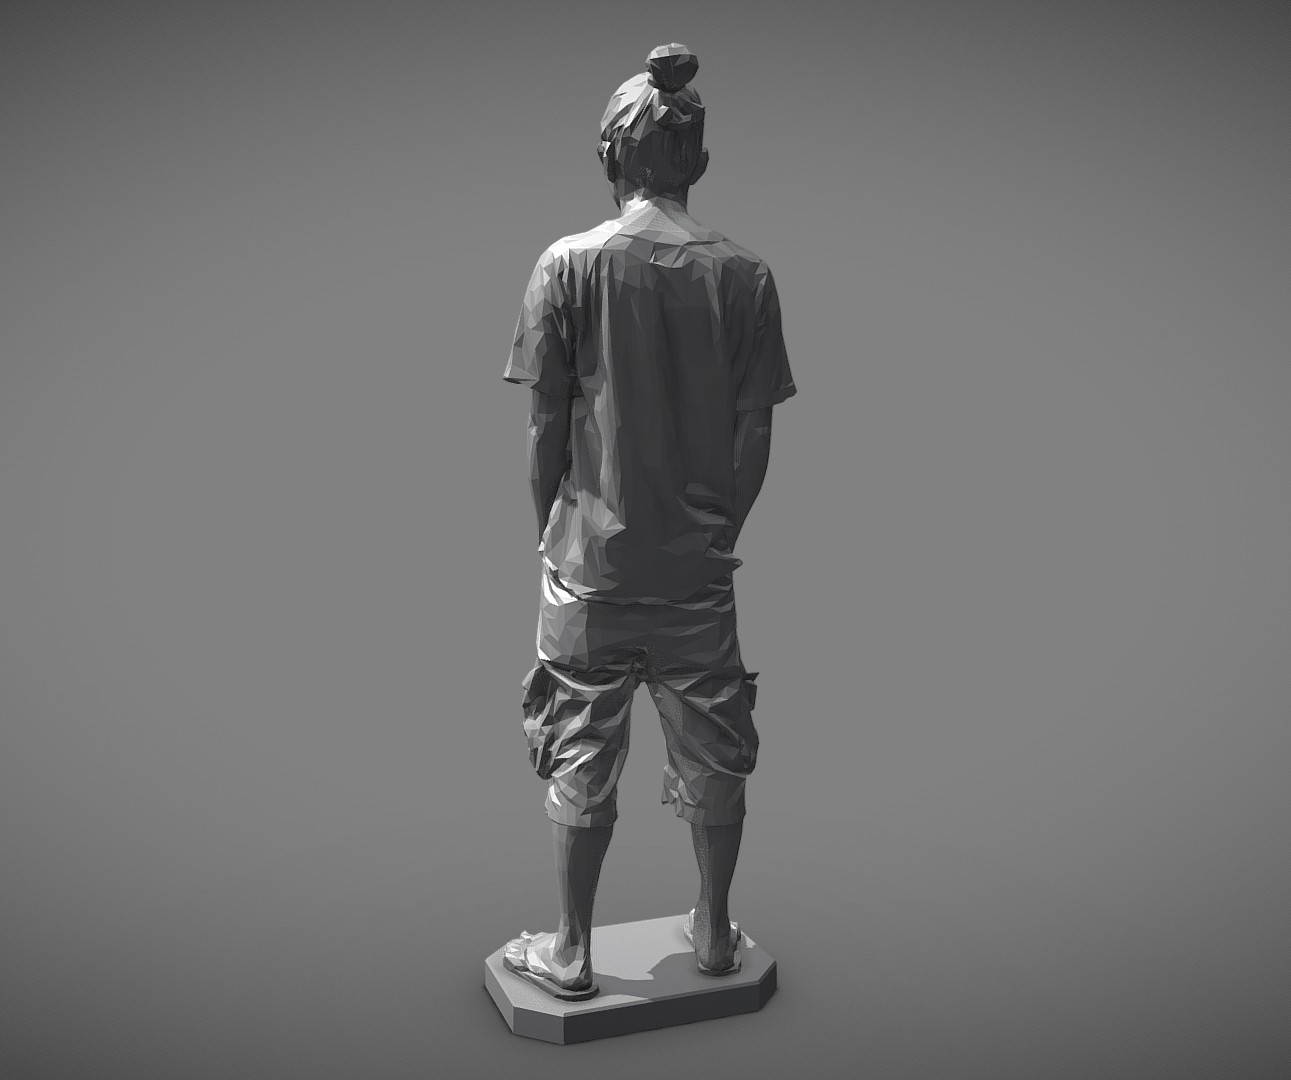 MW 3D printing test-Low - Download Free 3D model by mwopus (@mwopus) - Sketchfab20190320-007951.jpg Download STL file MW 3D printing test-Low,Medium,High • Template to 3D print, MWopus